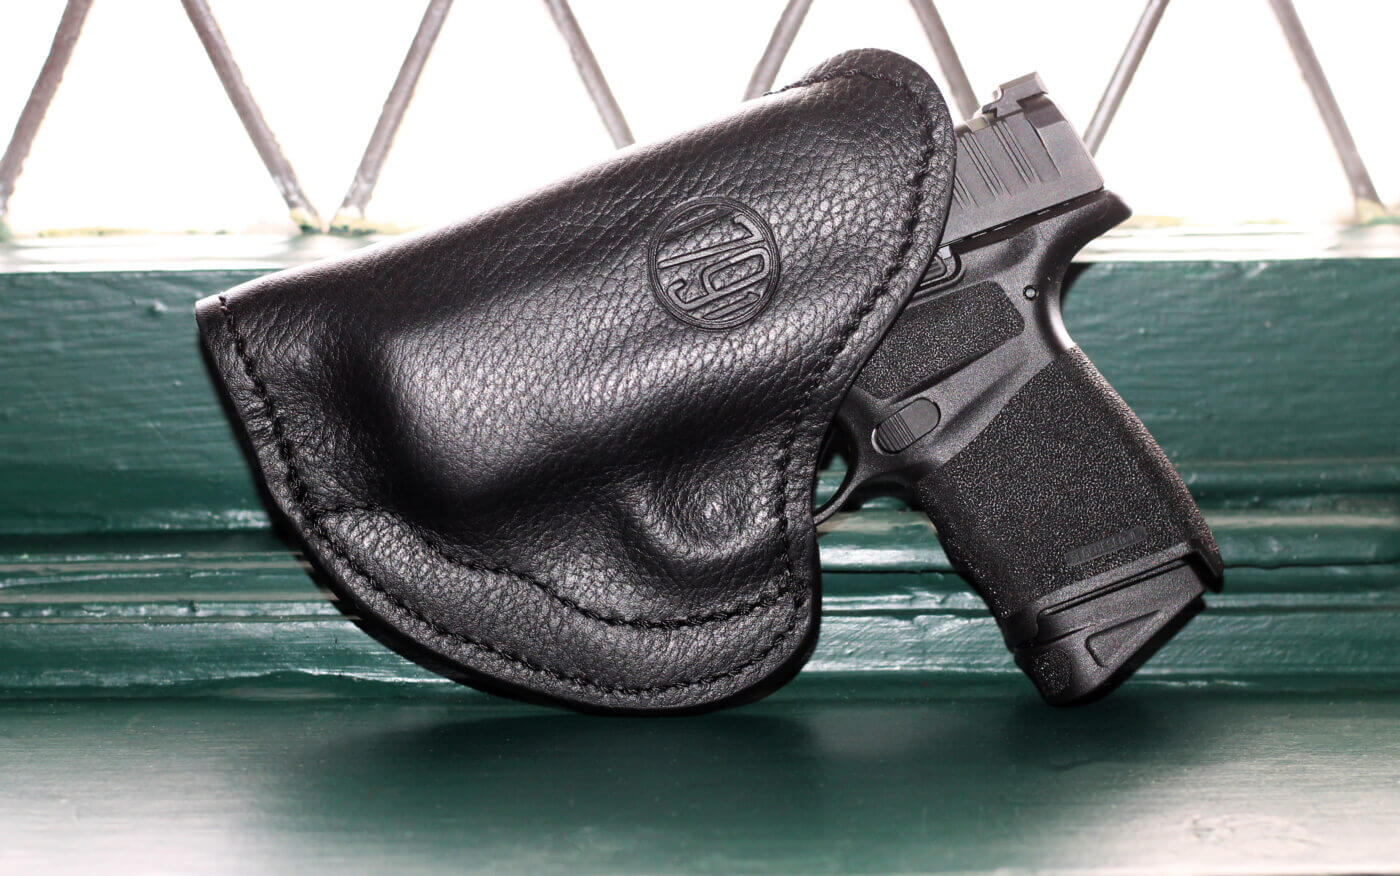 1791 Gunleather holster custom fitted to Hellcat pistol